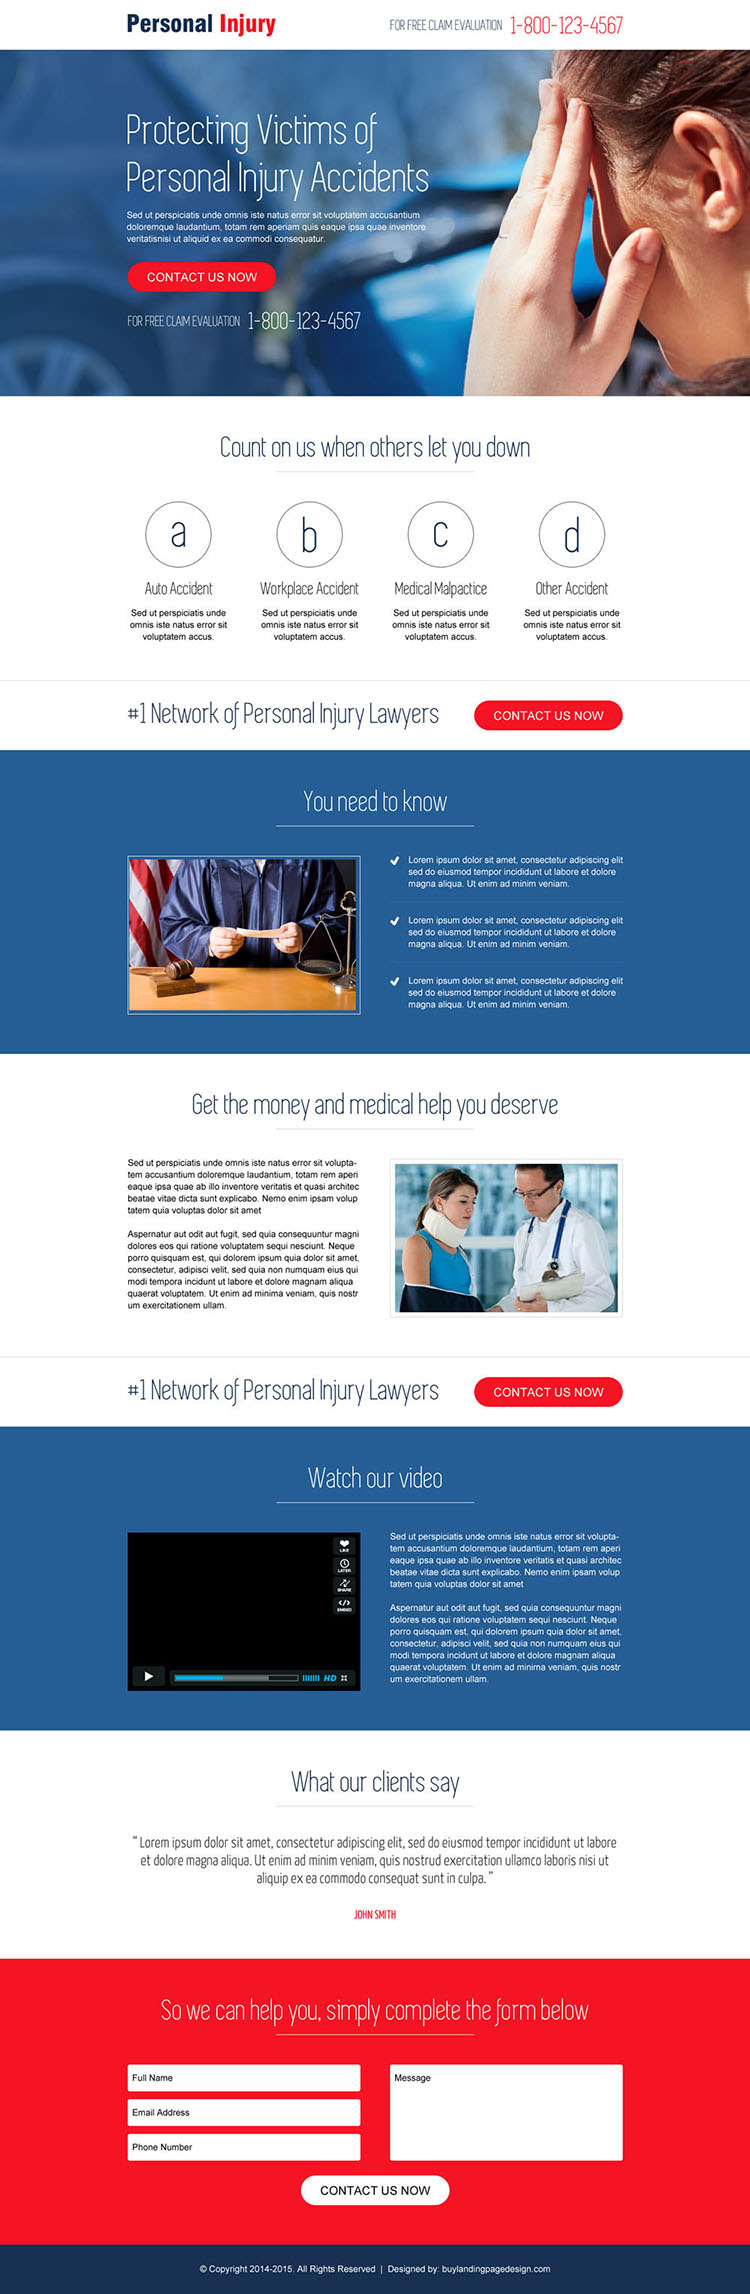 personal injury landing page design template